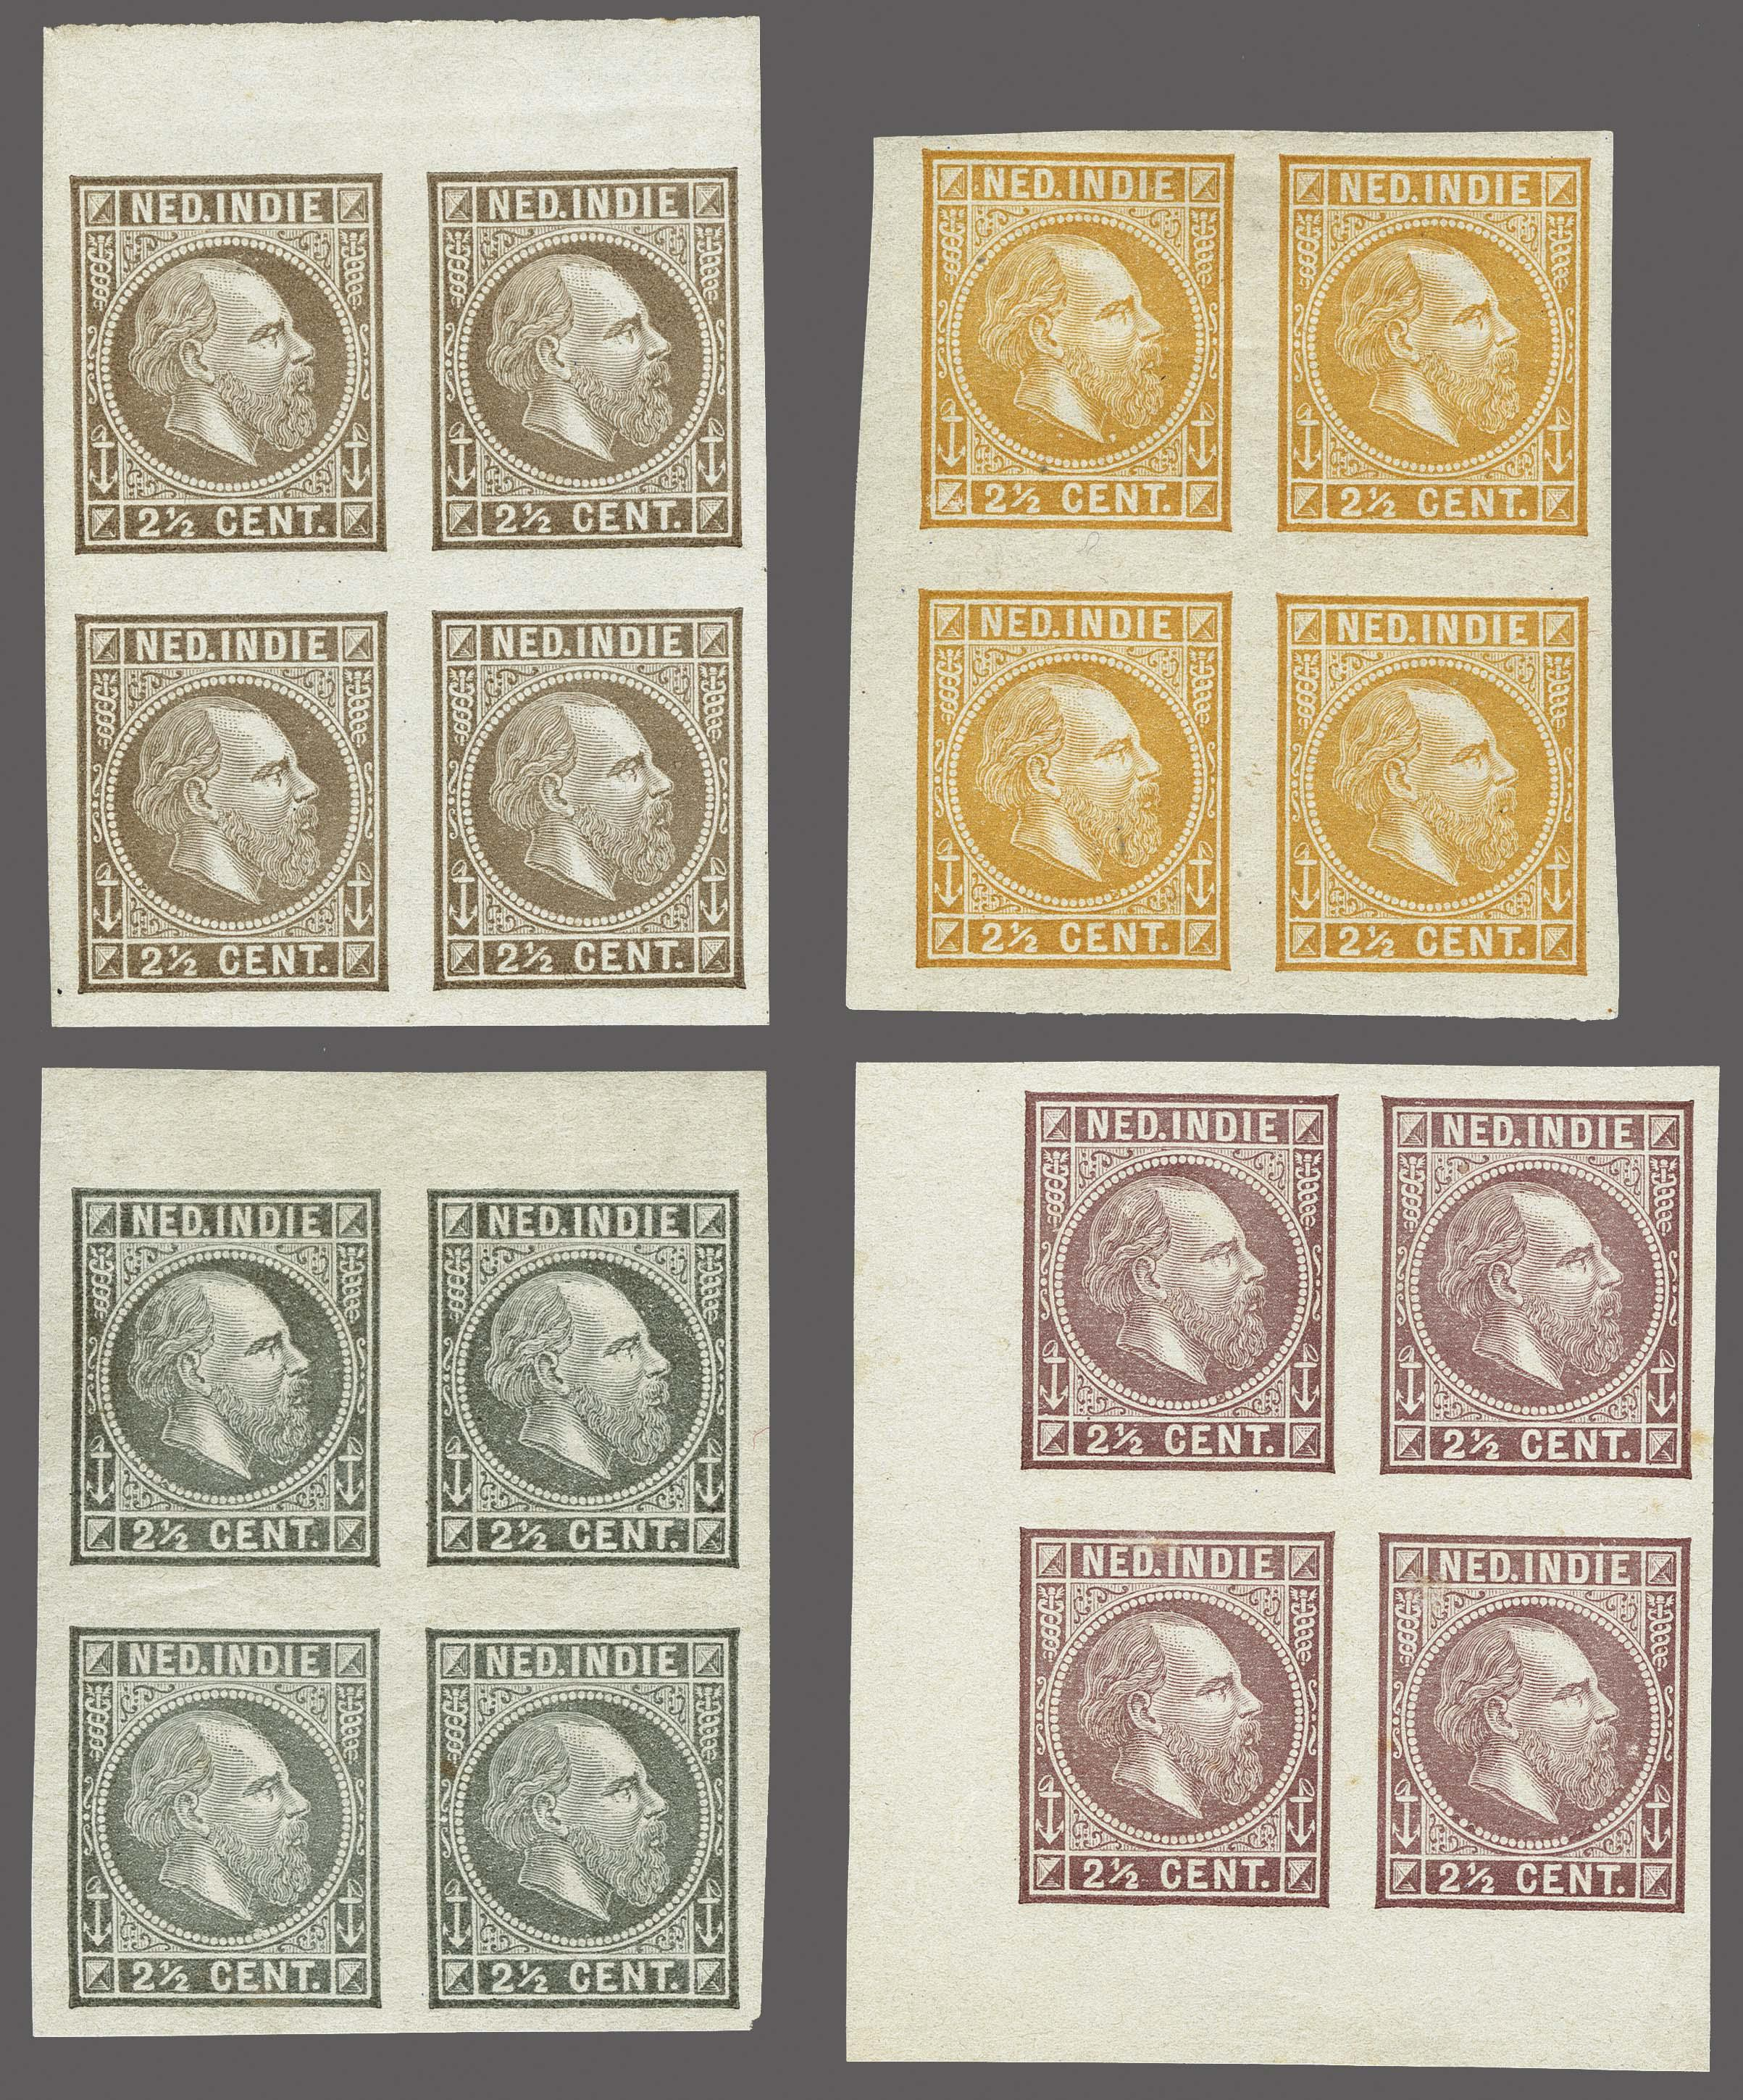 Lot 3309 - Netherlands and former colonies Netherlands Indies -  Corinphila Veilingen Auction 250-253 - Day 4 - Proofs of Netherlands former colonies